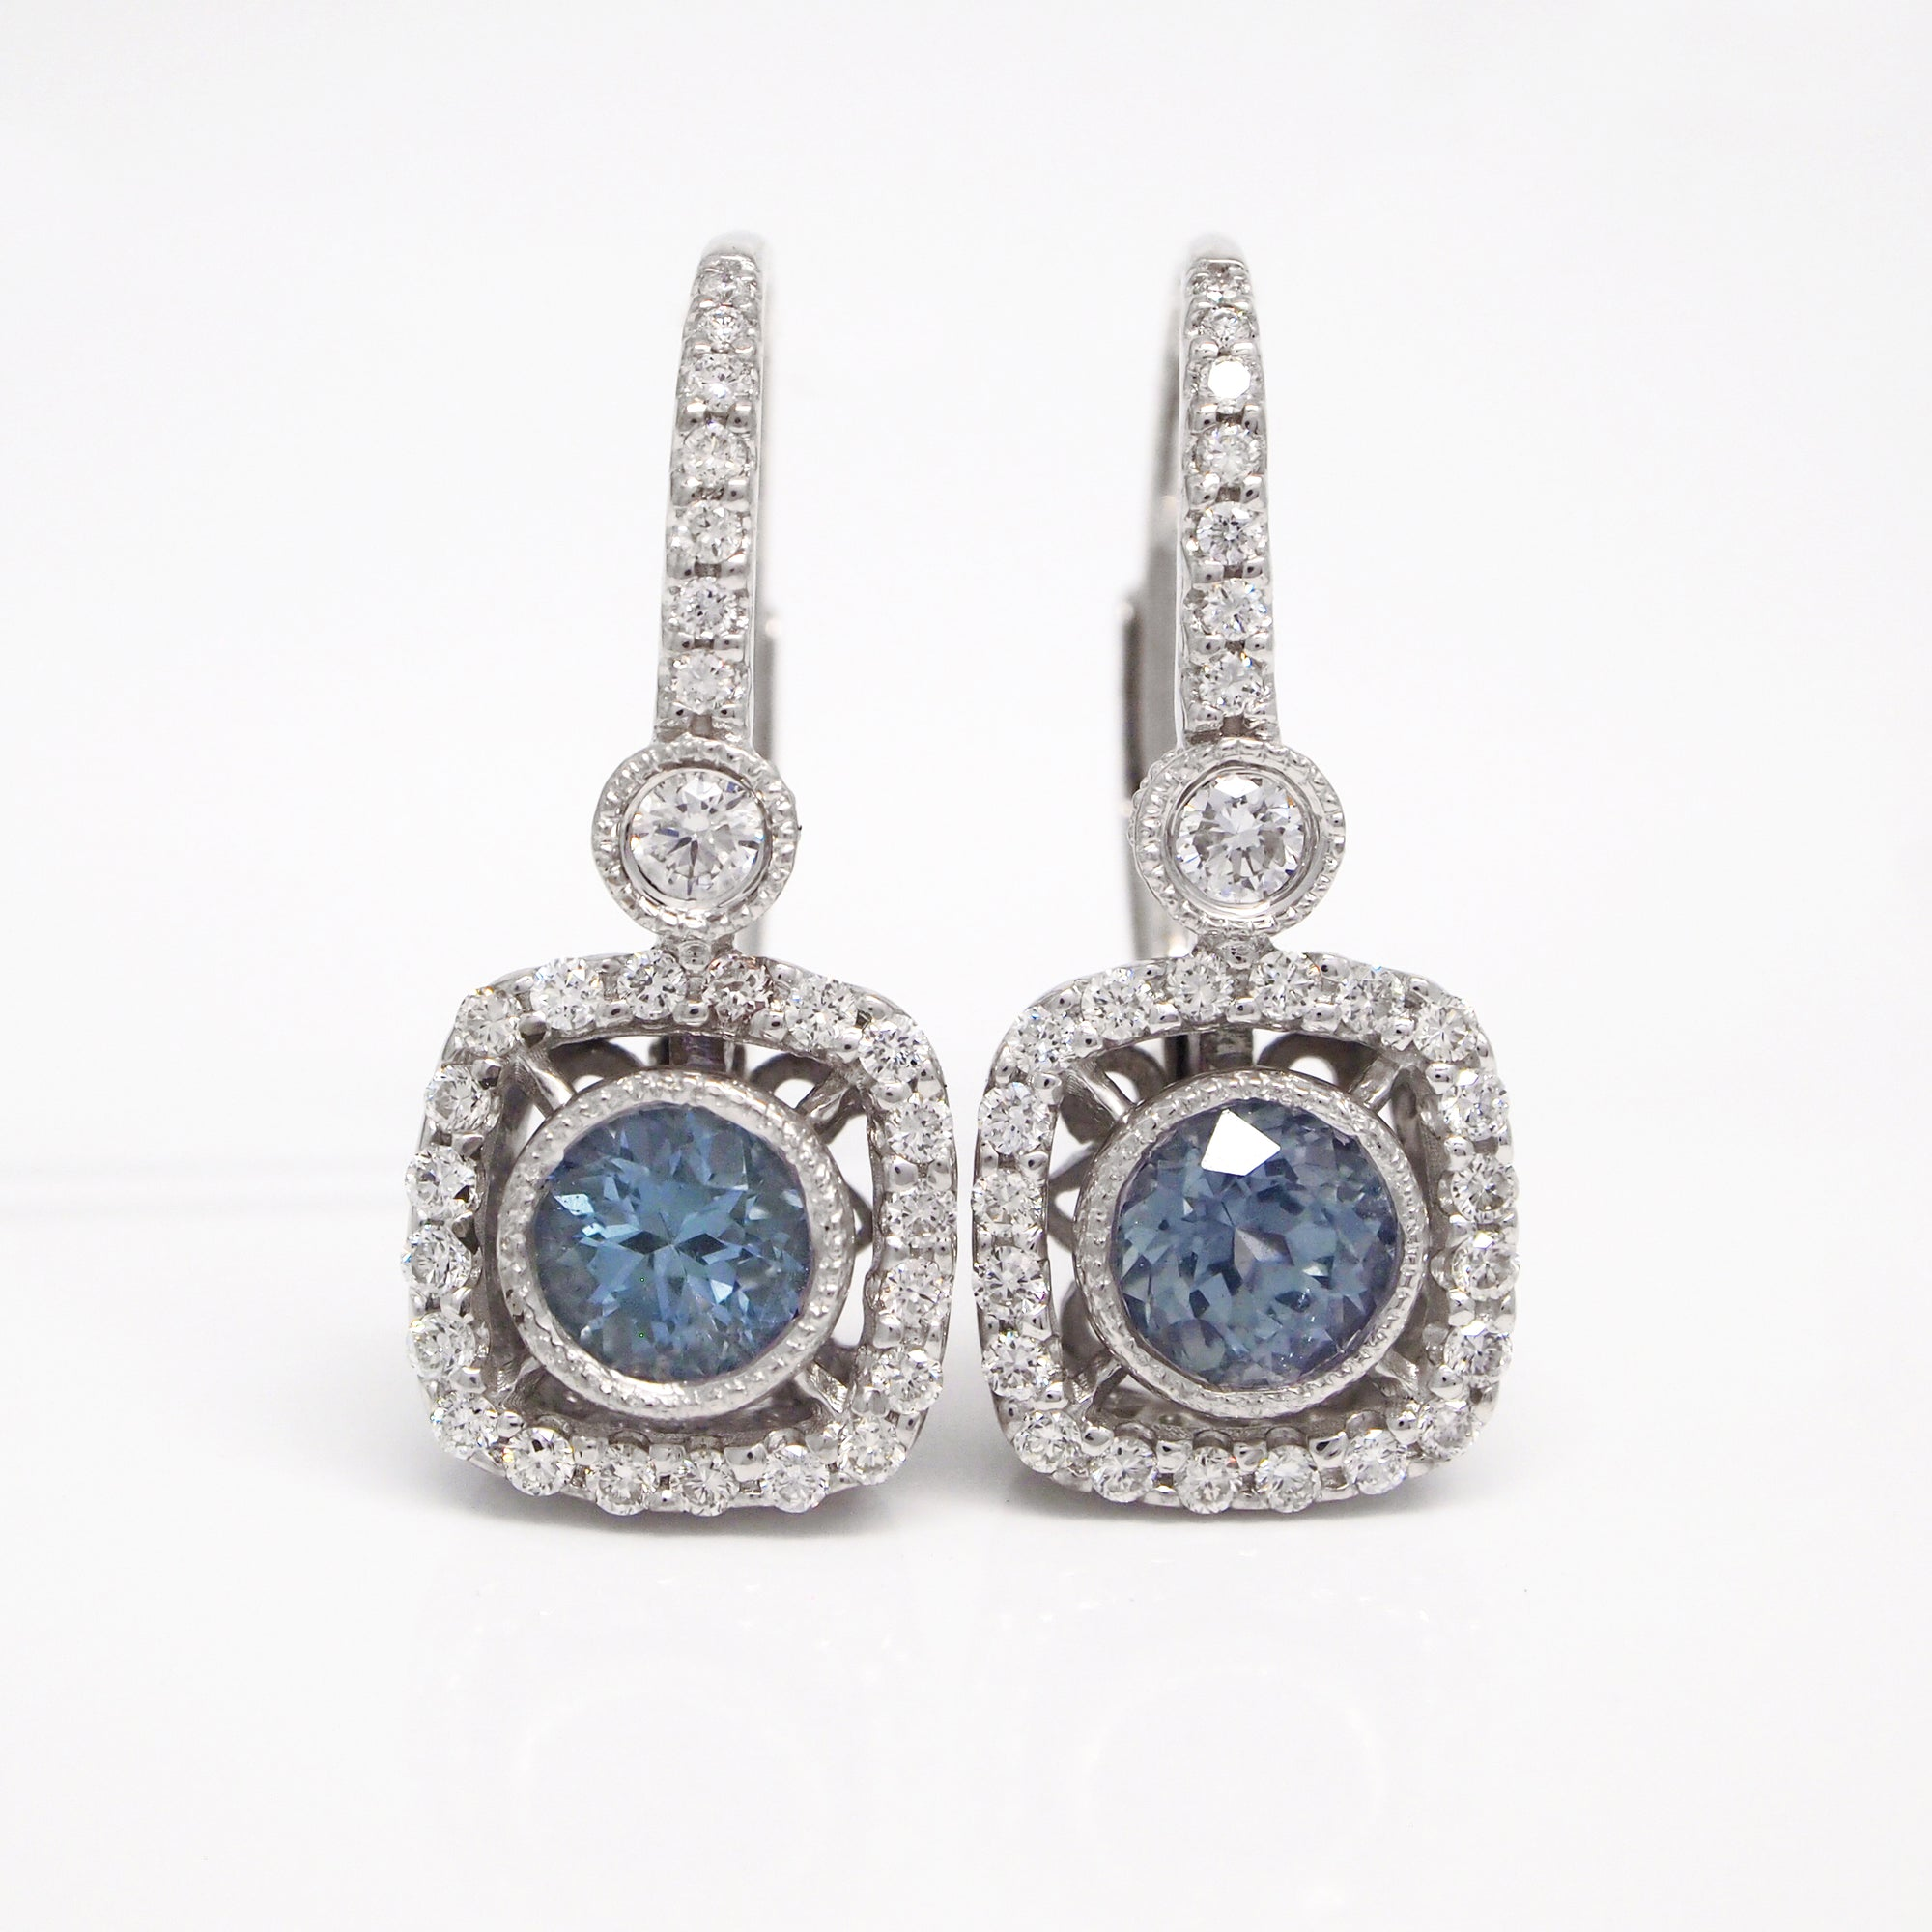 14K White Gold Ceylon Sapphire And Diamond Filigree Milgrain Earrings